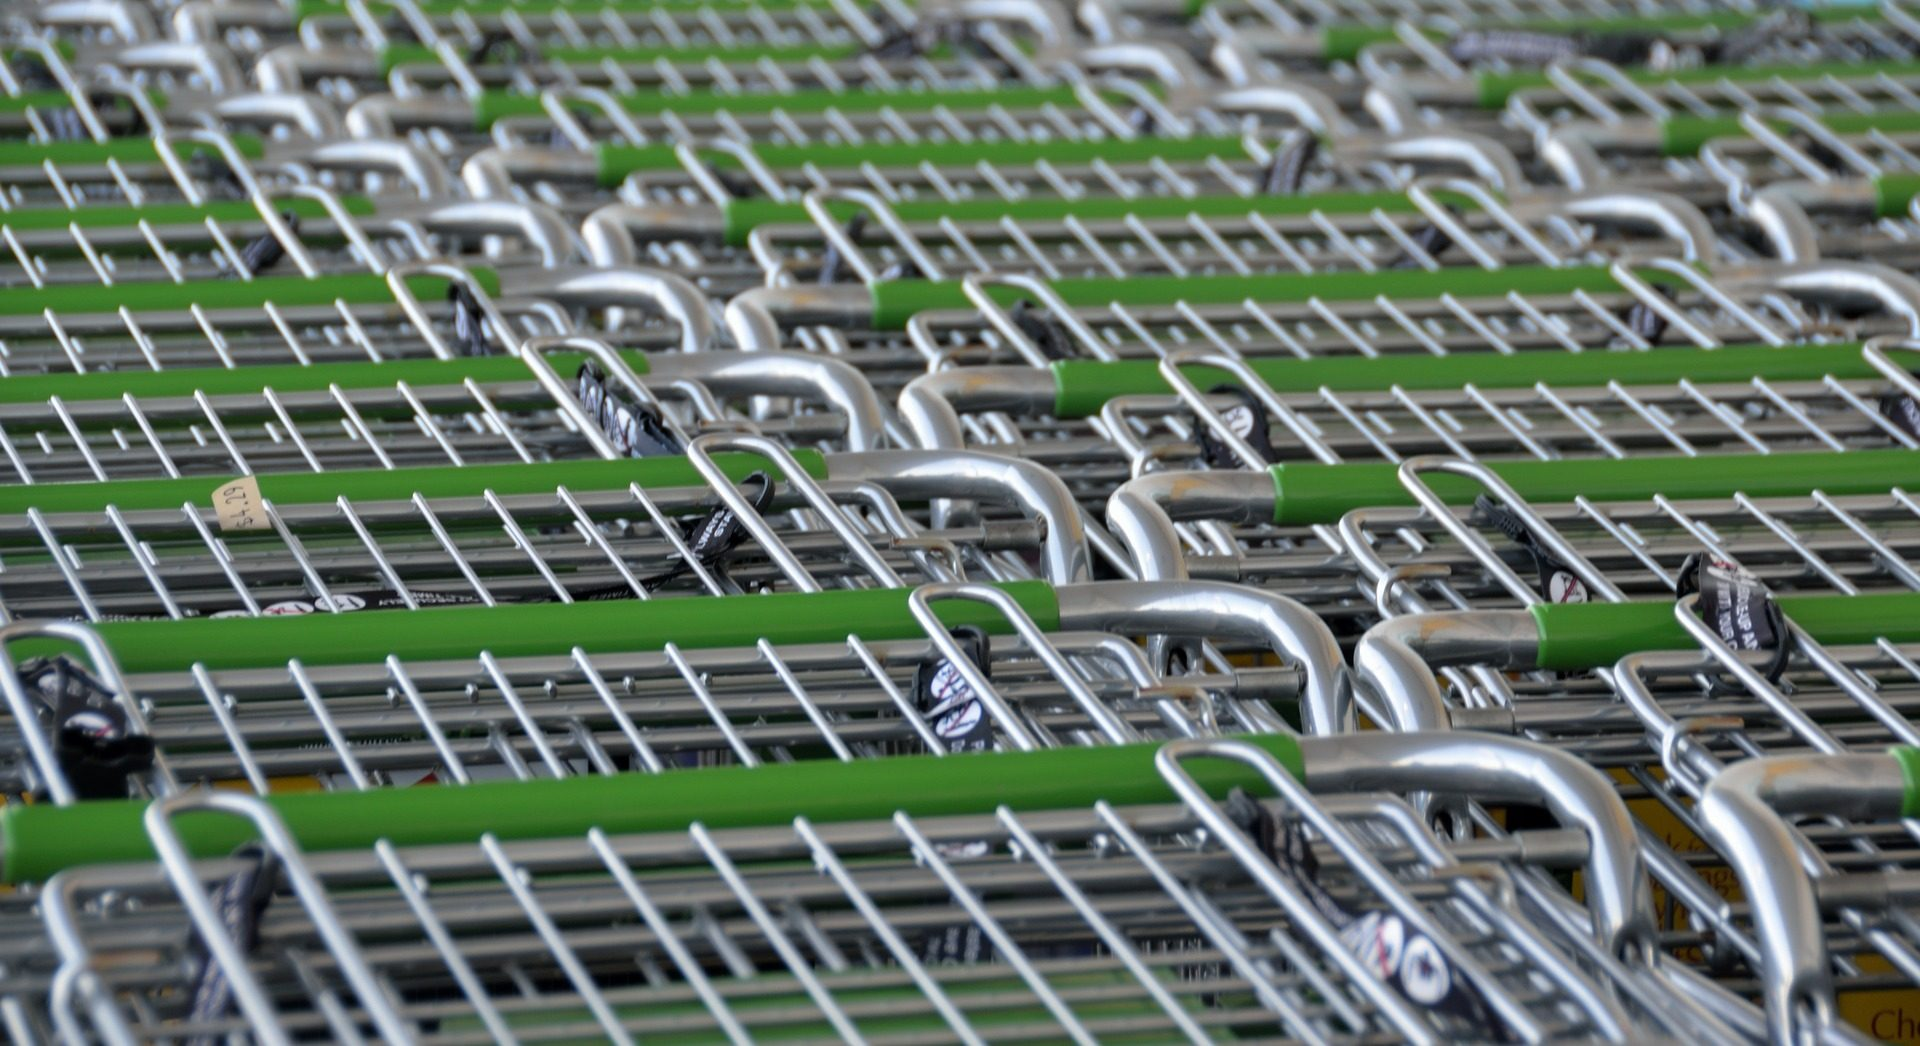 Shopping supermarket trolleys